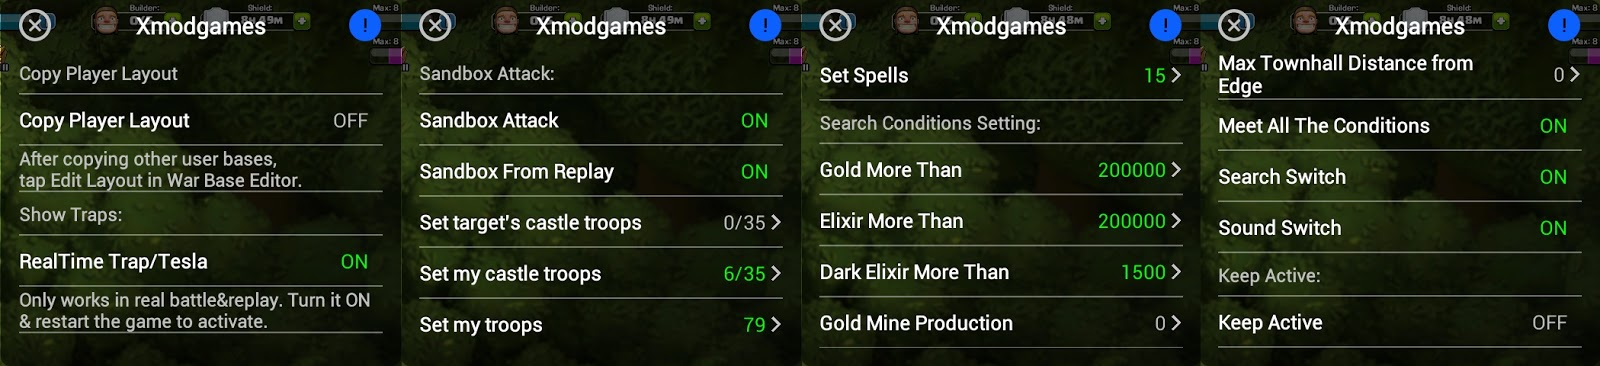 Xmod app for coc